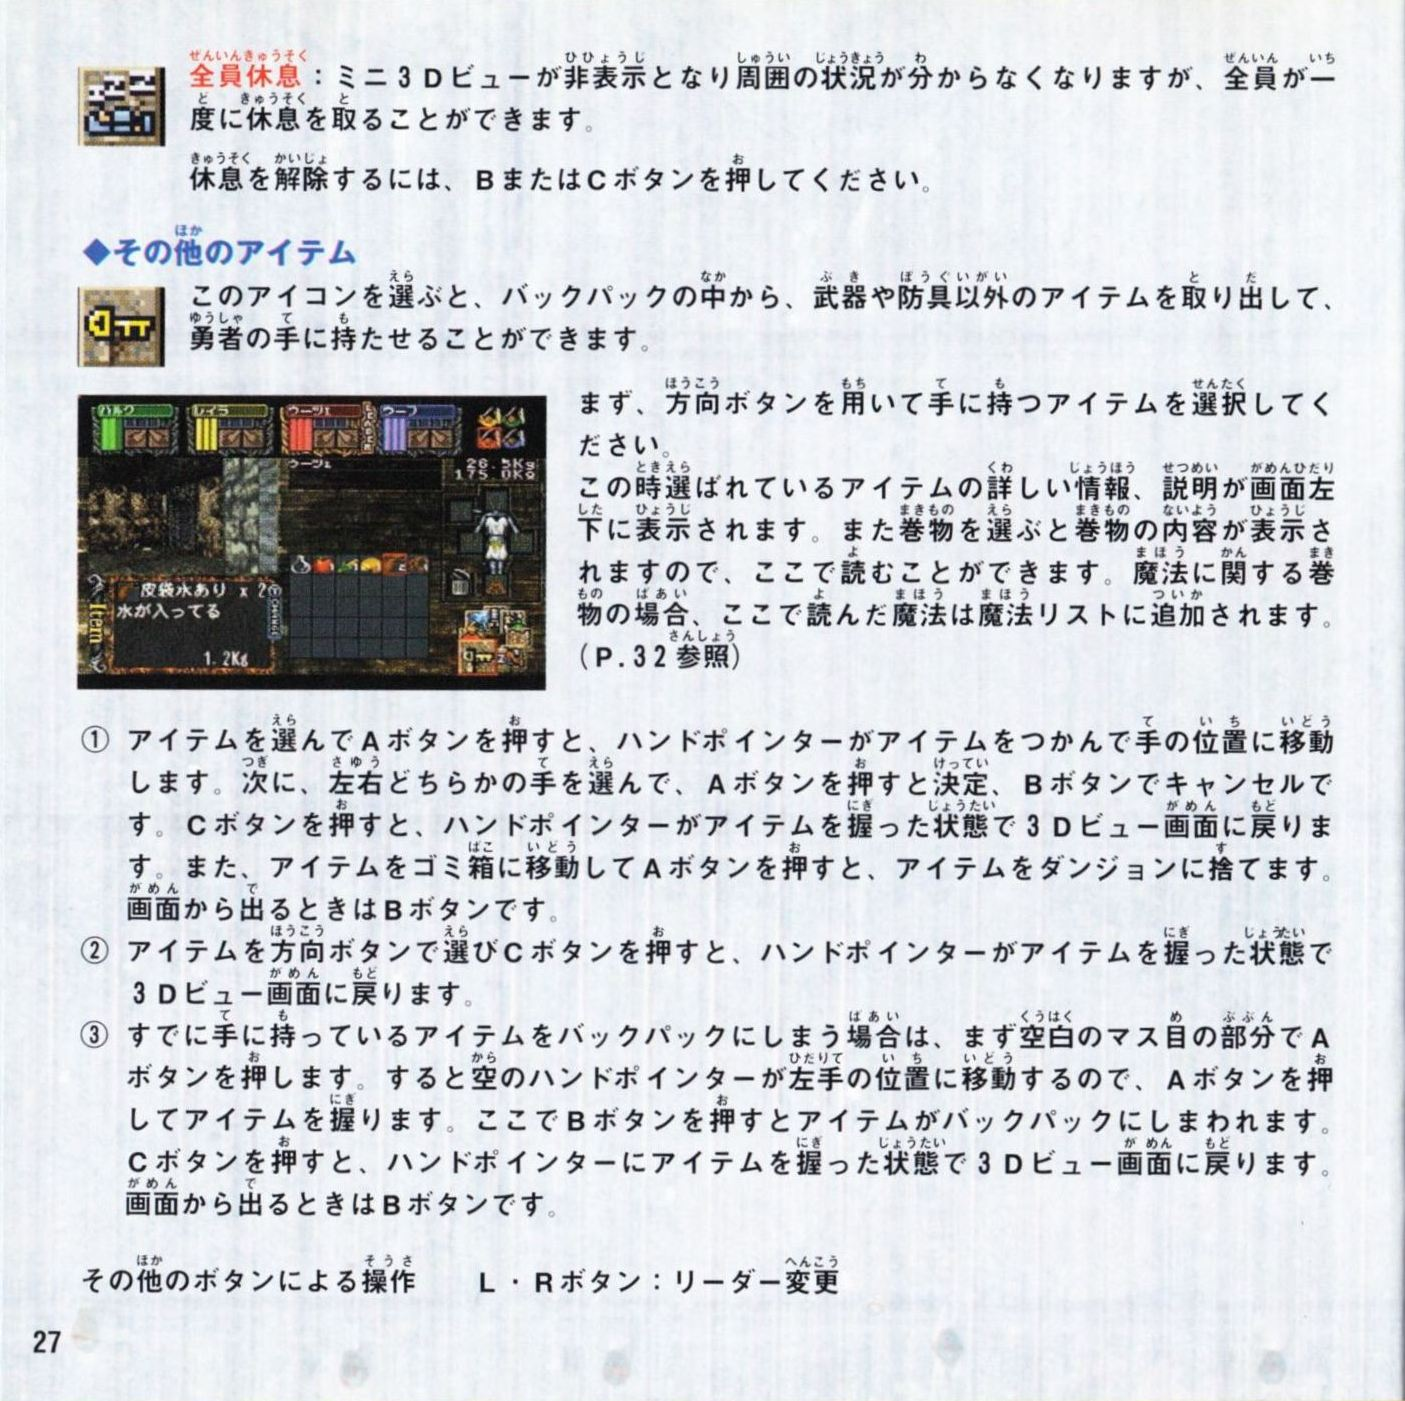 Game - Dungeon Master Nexus - JP - Sega Saturn - Booklet - Page 028 - Scan